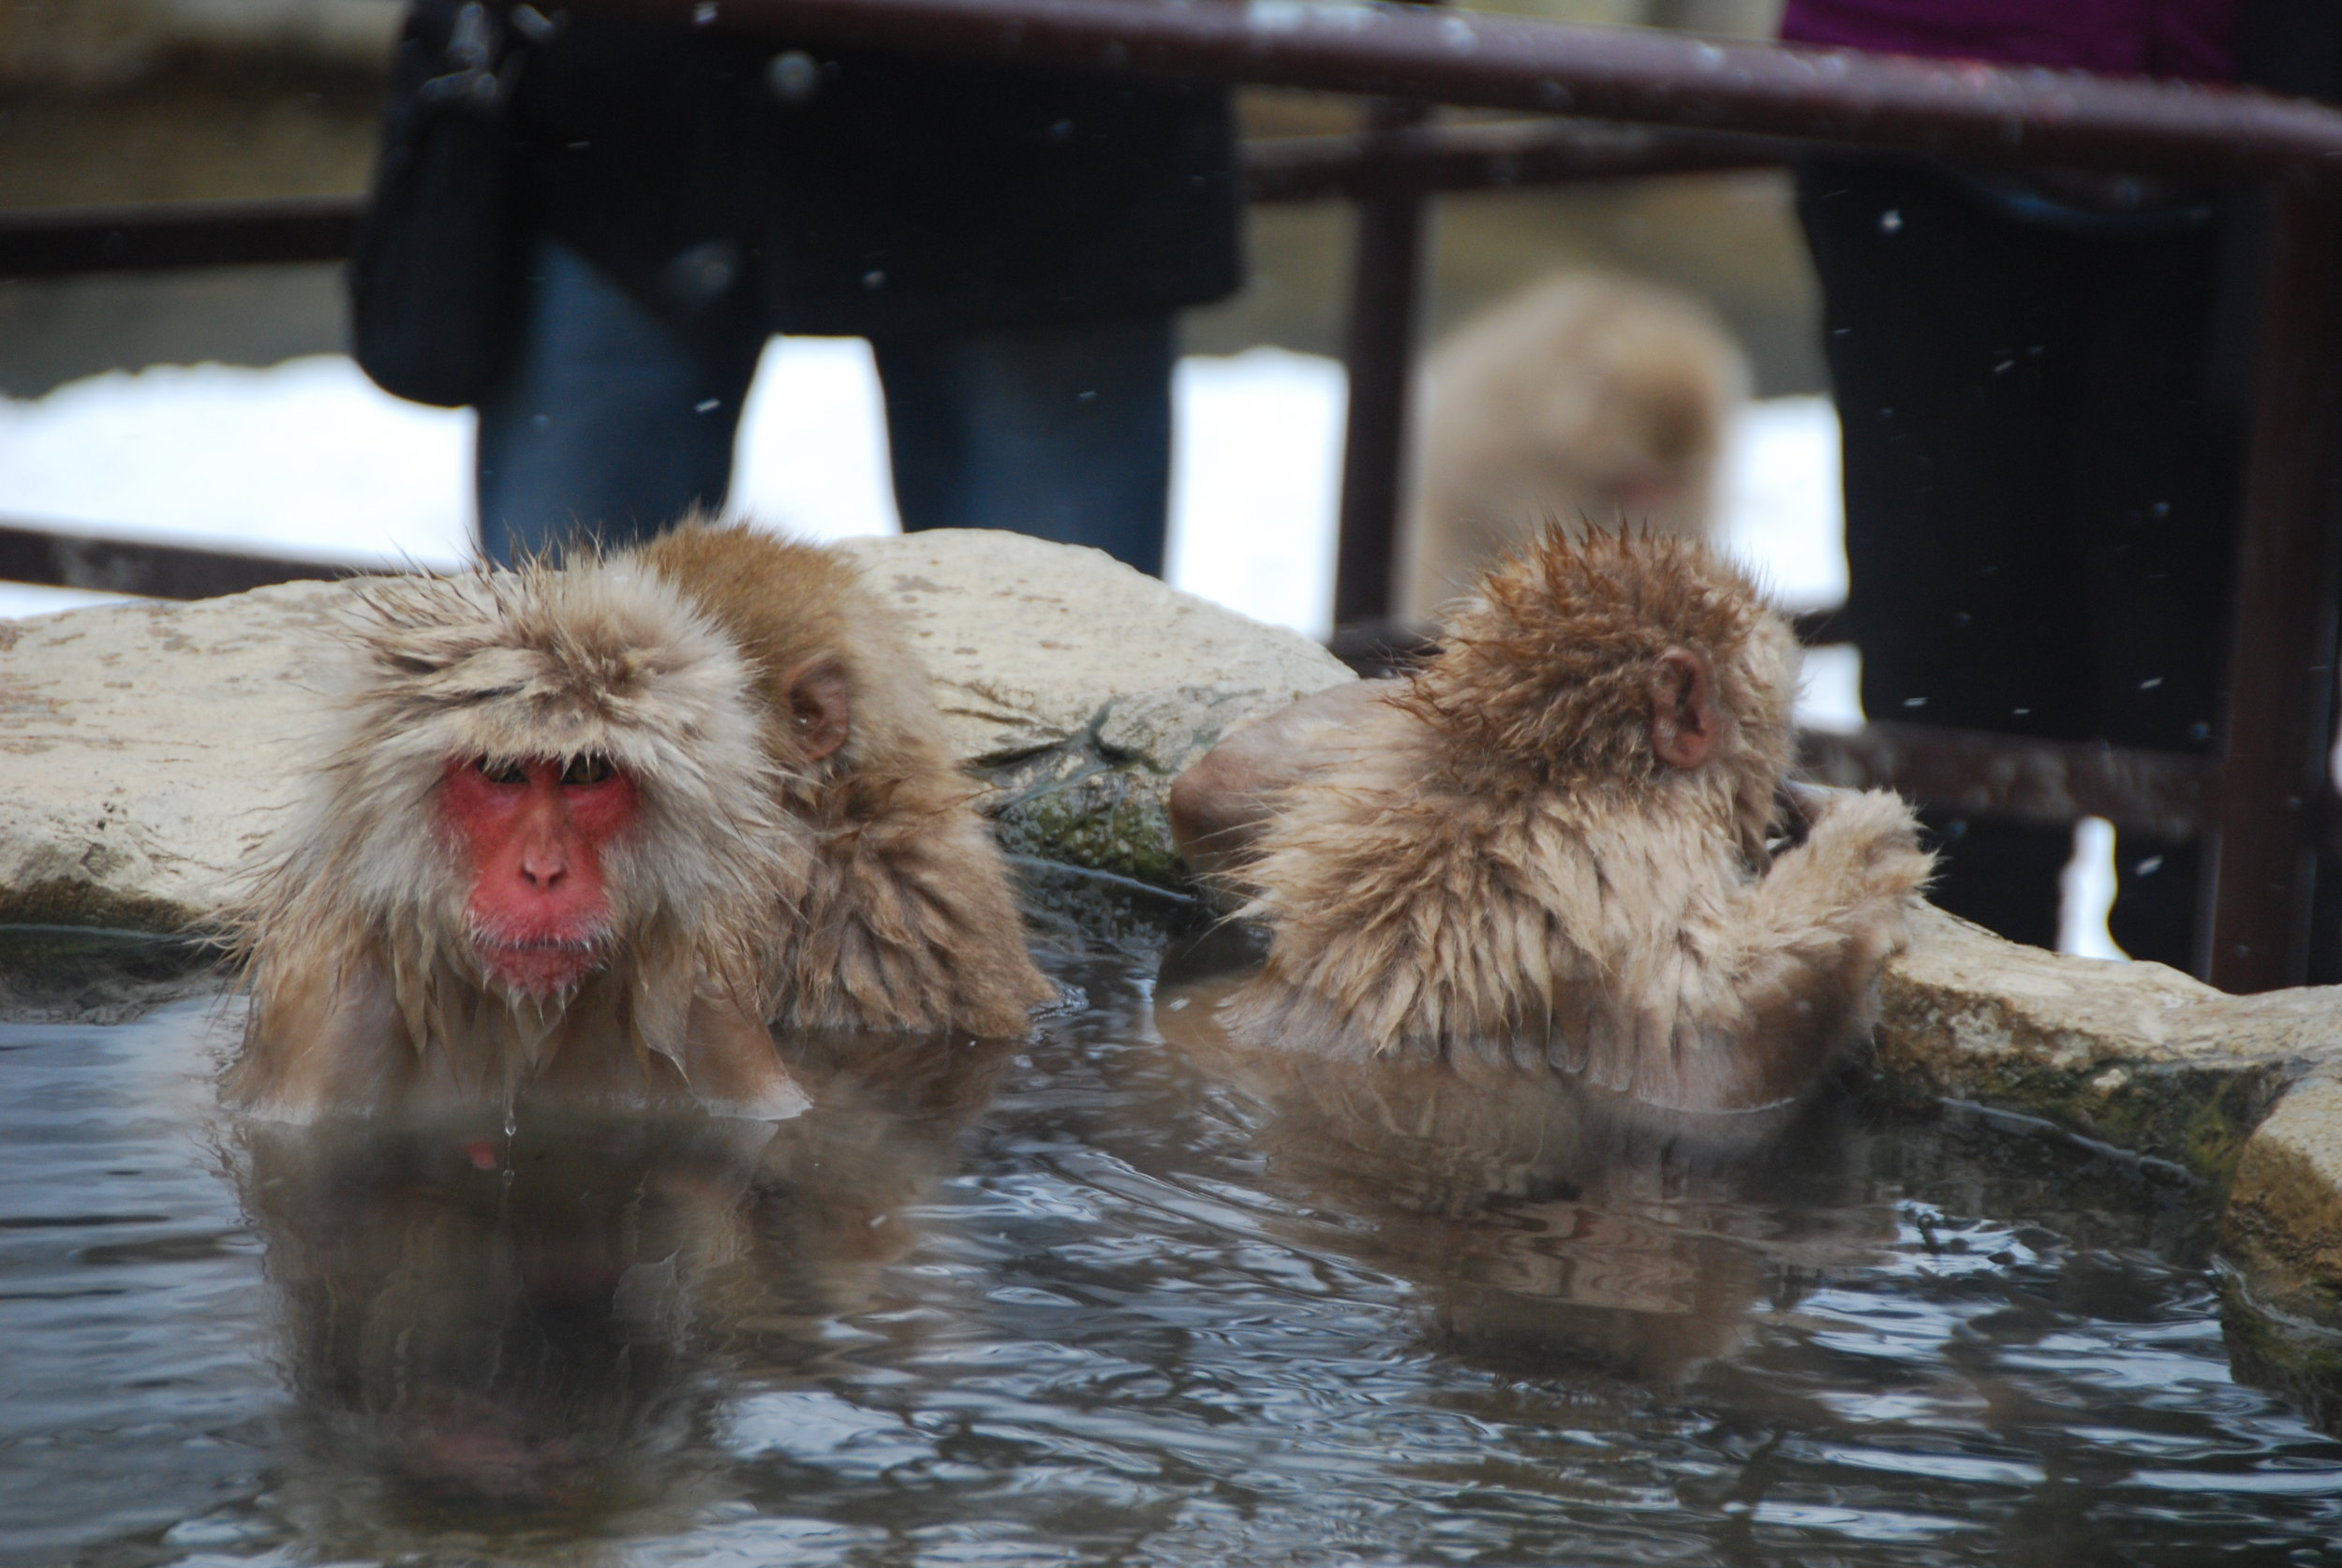 Epic Monkey Bath - Where in the world is this? Have you been here yet?